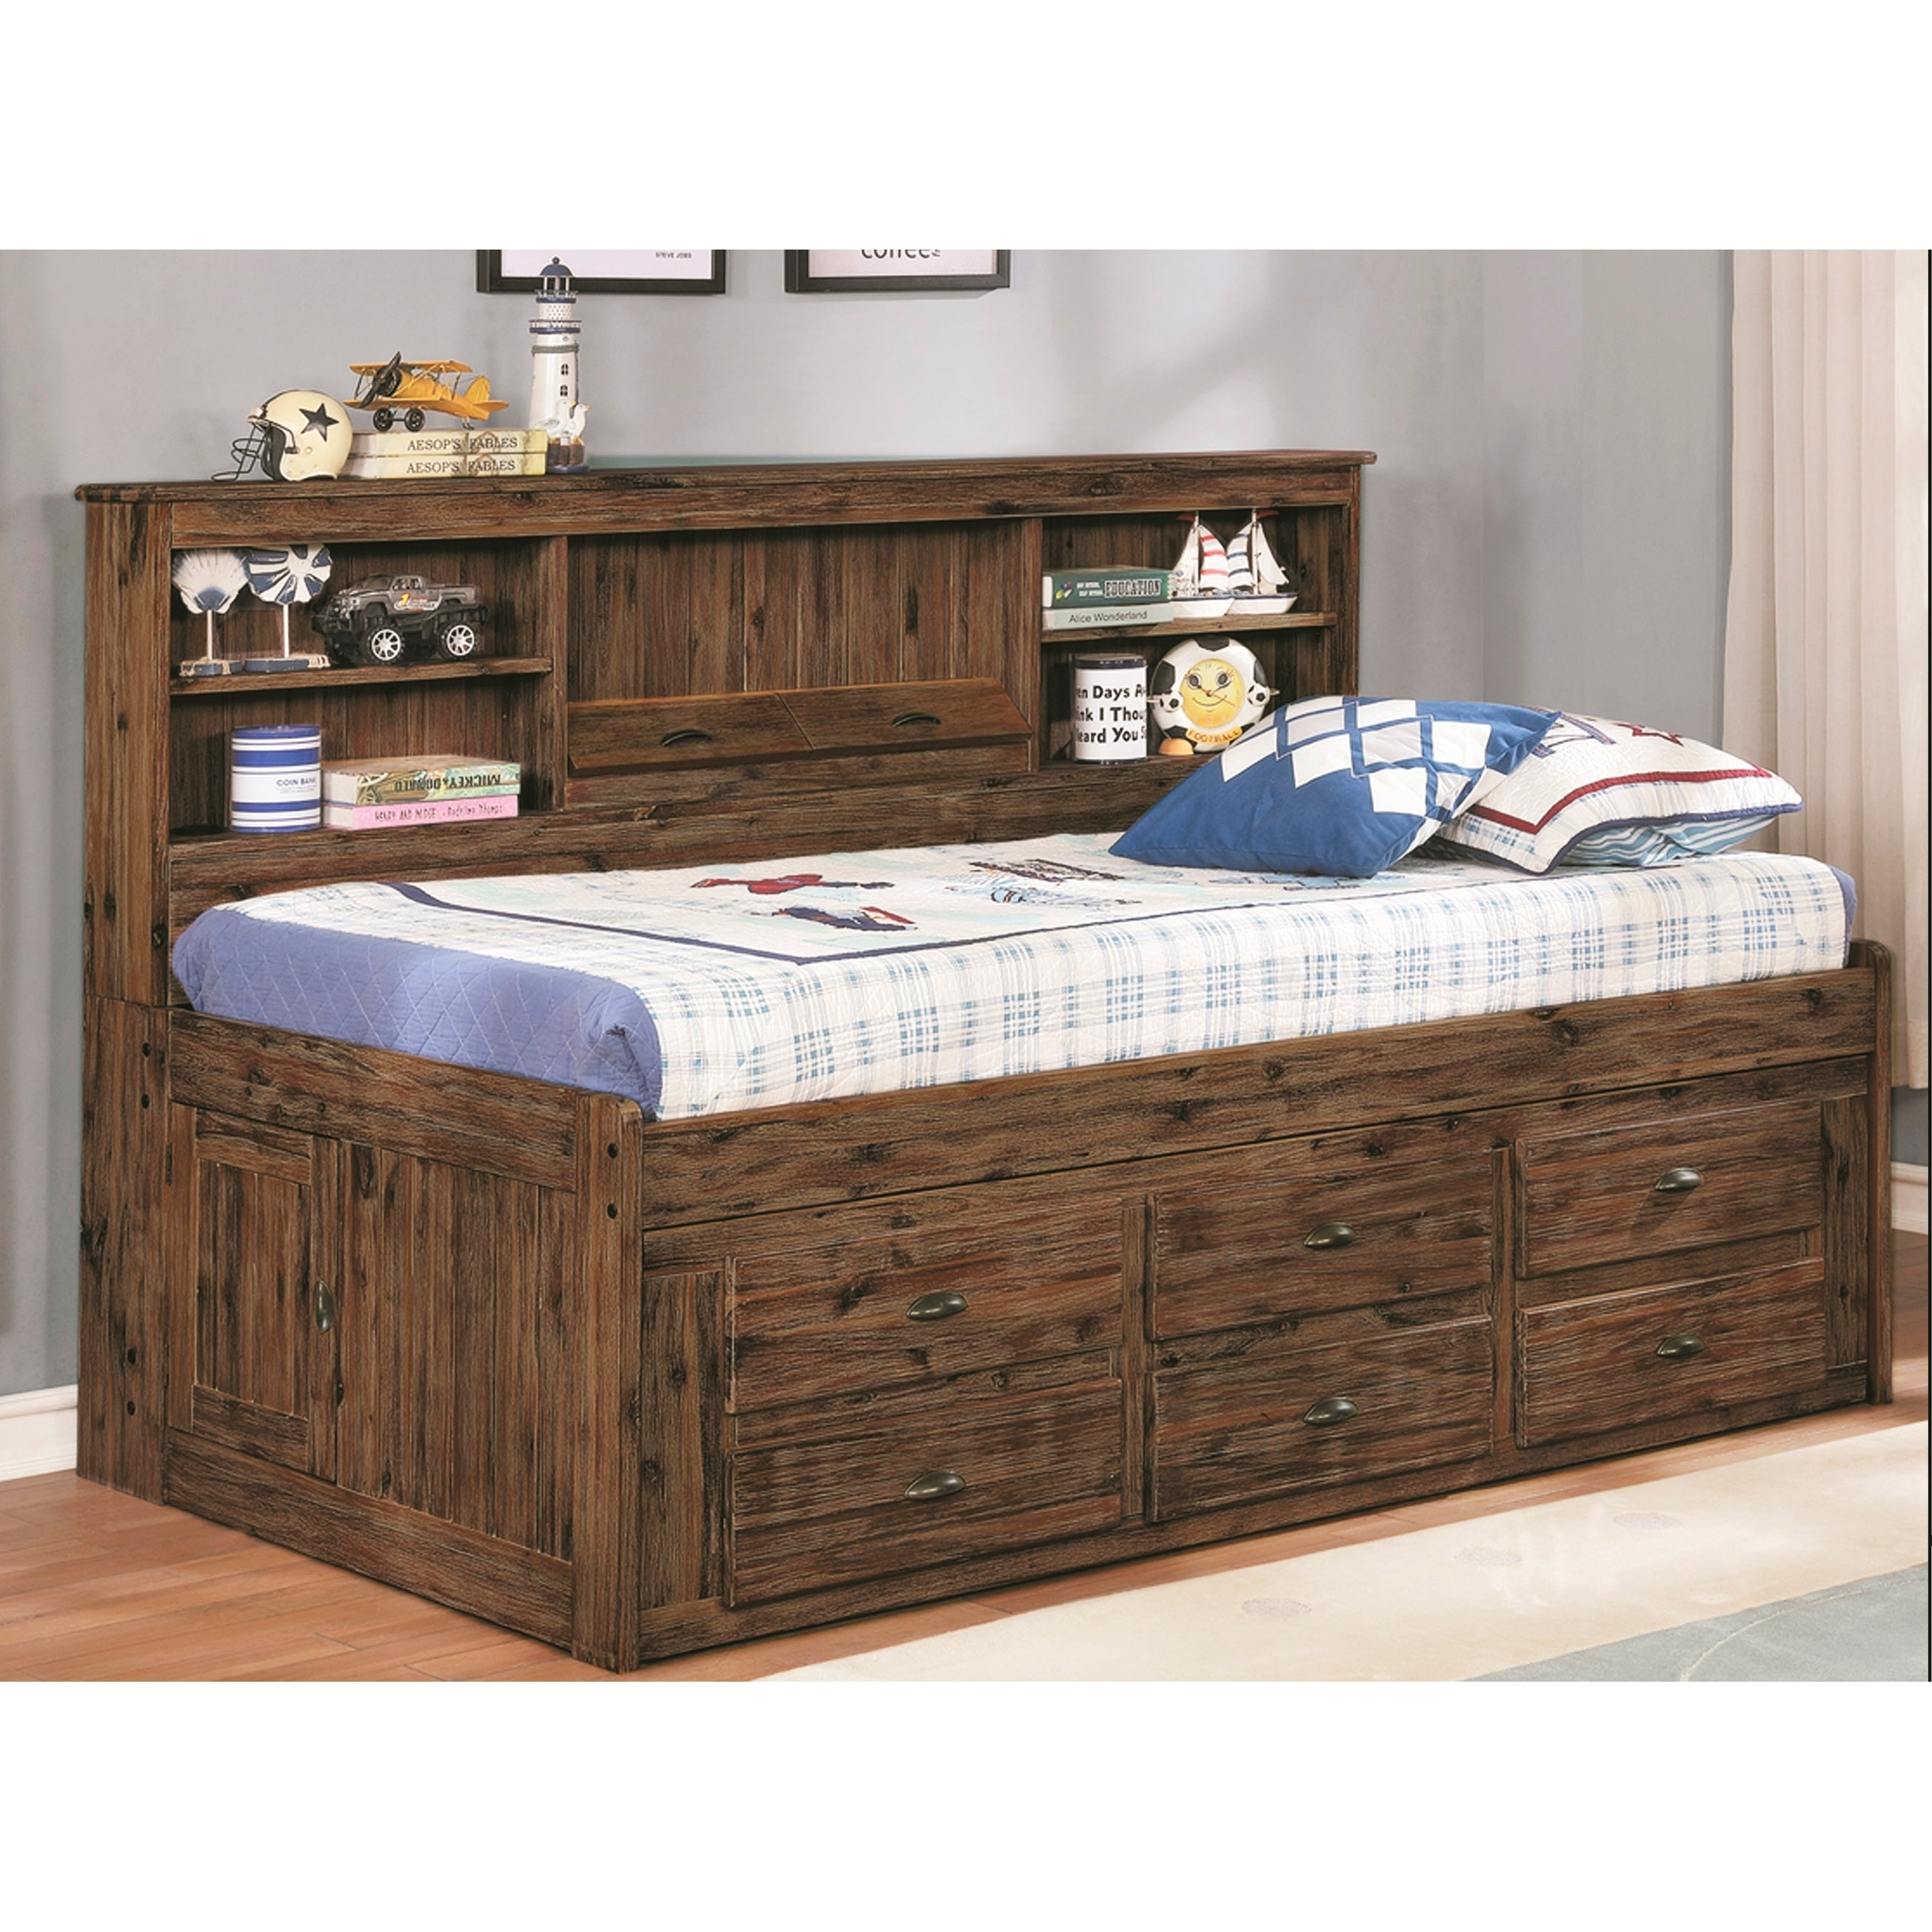 - Shop Solid Hardwood Twin Daybed With Six Drawers And Bookcase - On